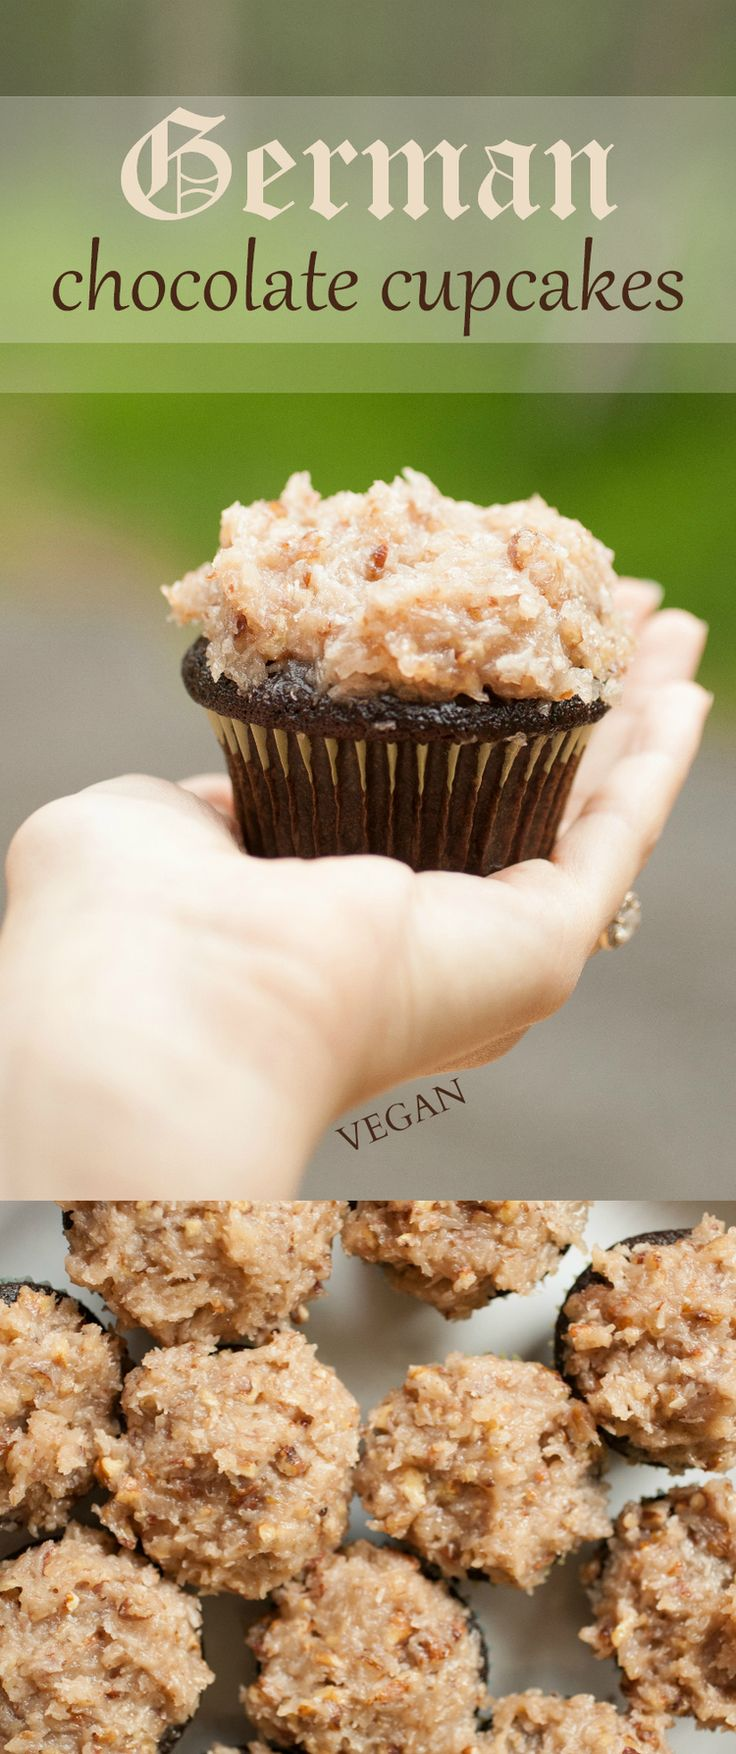 Produce On Parade - German Chocolate Cupcakes - Seriously the real deal and so easy to make. Chocolate, coconut, and pecan goodness that is the German chocolate cake in cupcake form. Instructions on how to stuff a cupcake as well!